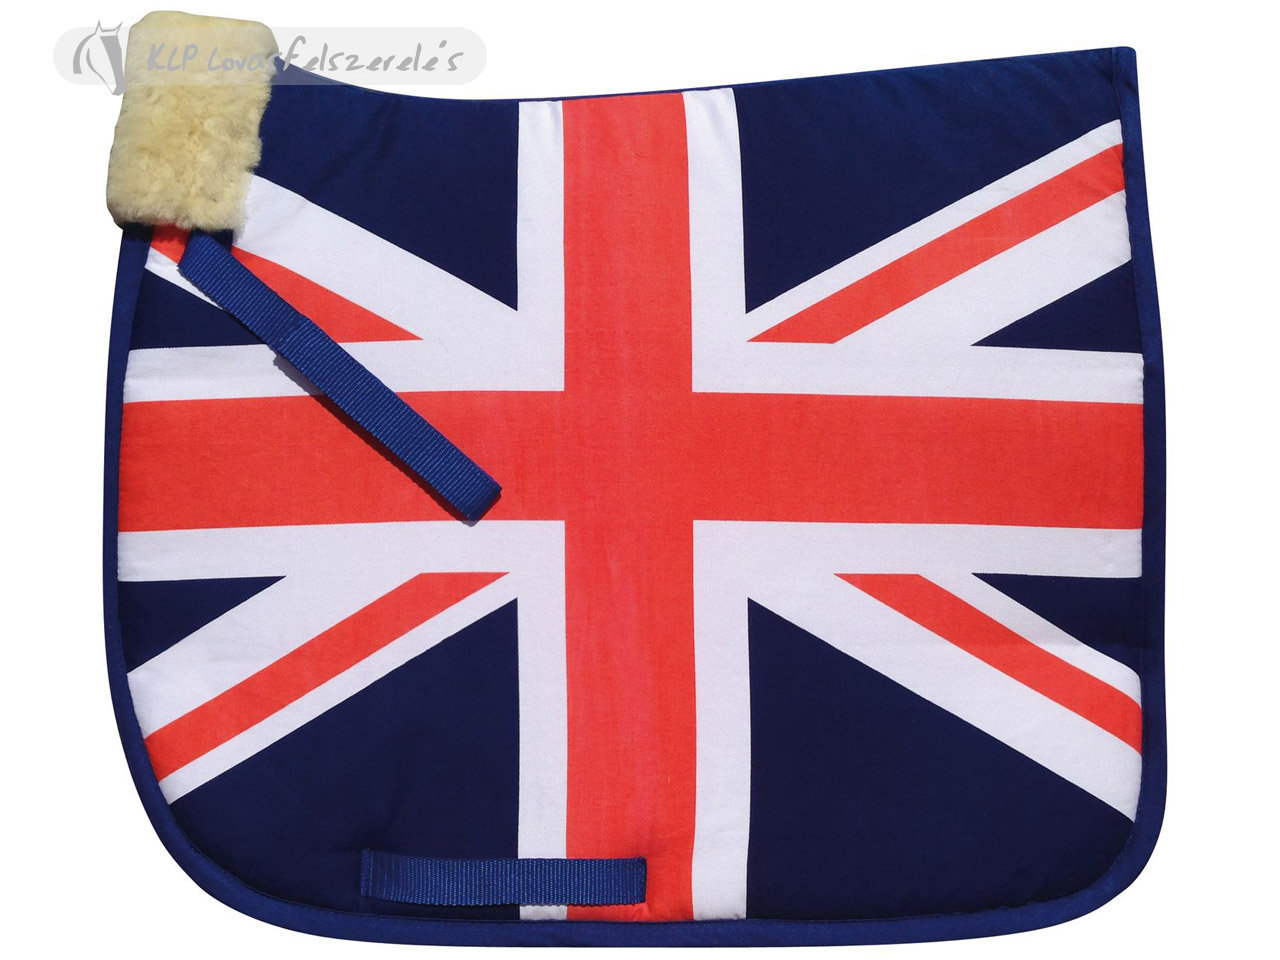 Saddle Pad London Black-Forest